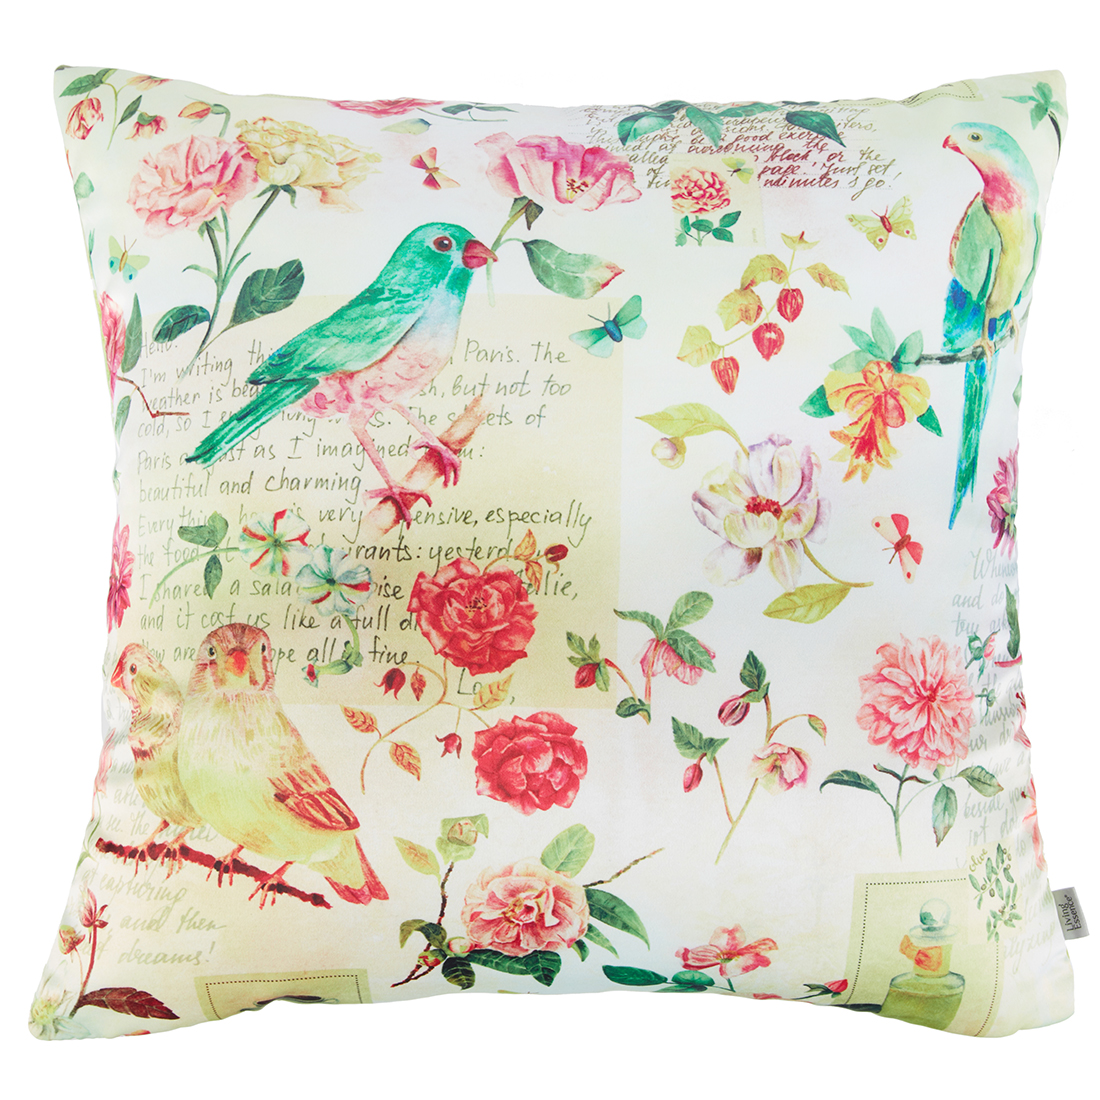 Digital Cushion Cover Parrot Cushion Covers in Poly Satin Colour by Living Essence